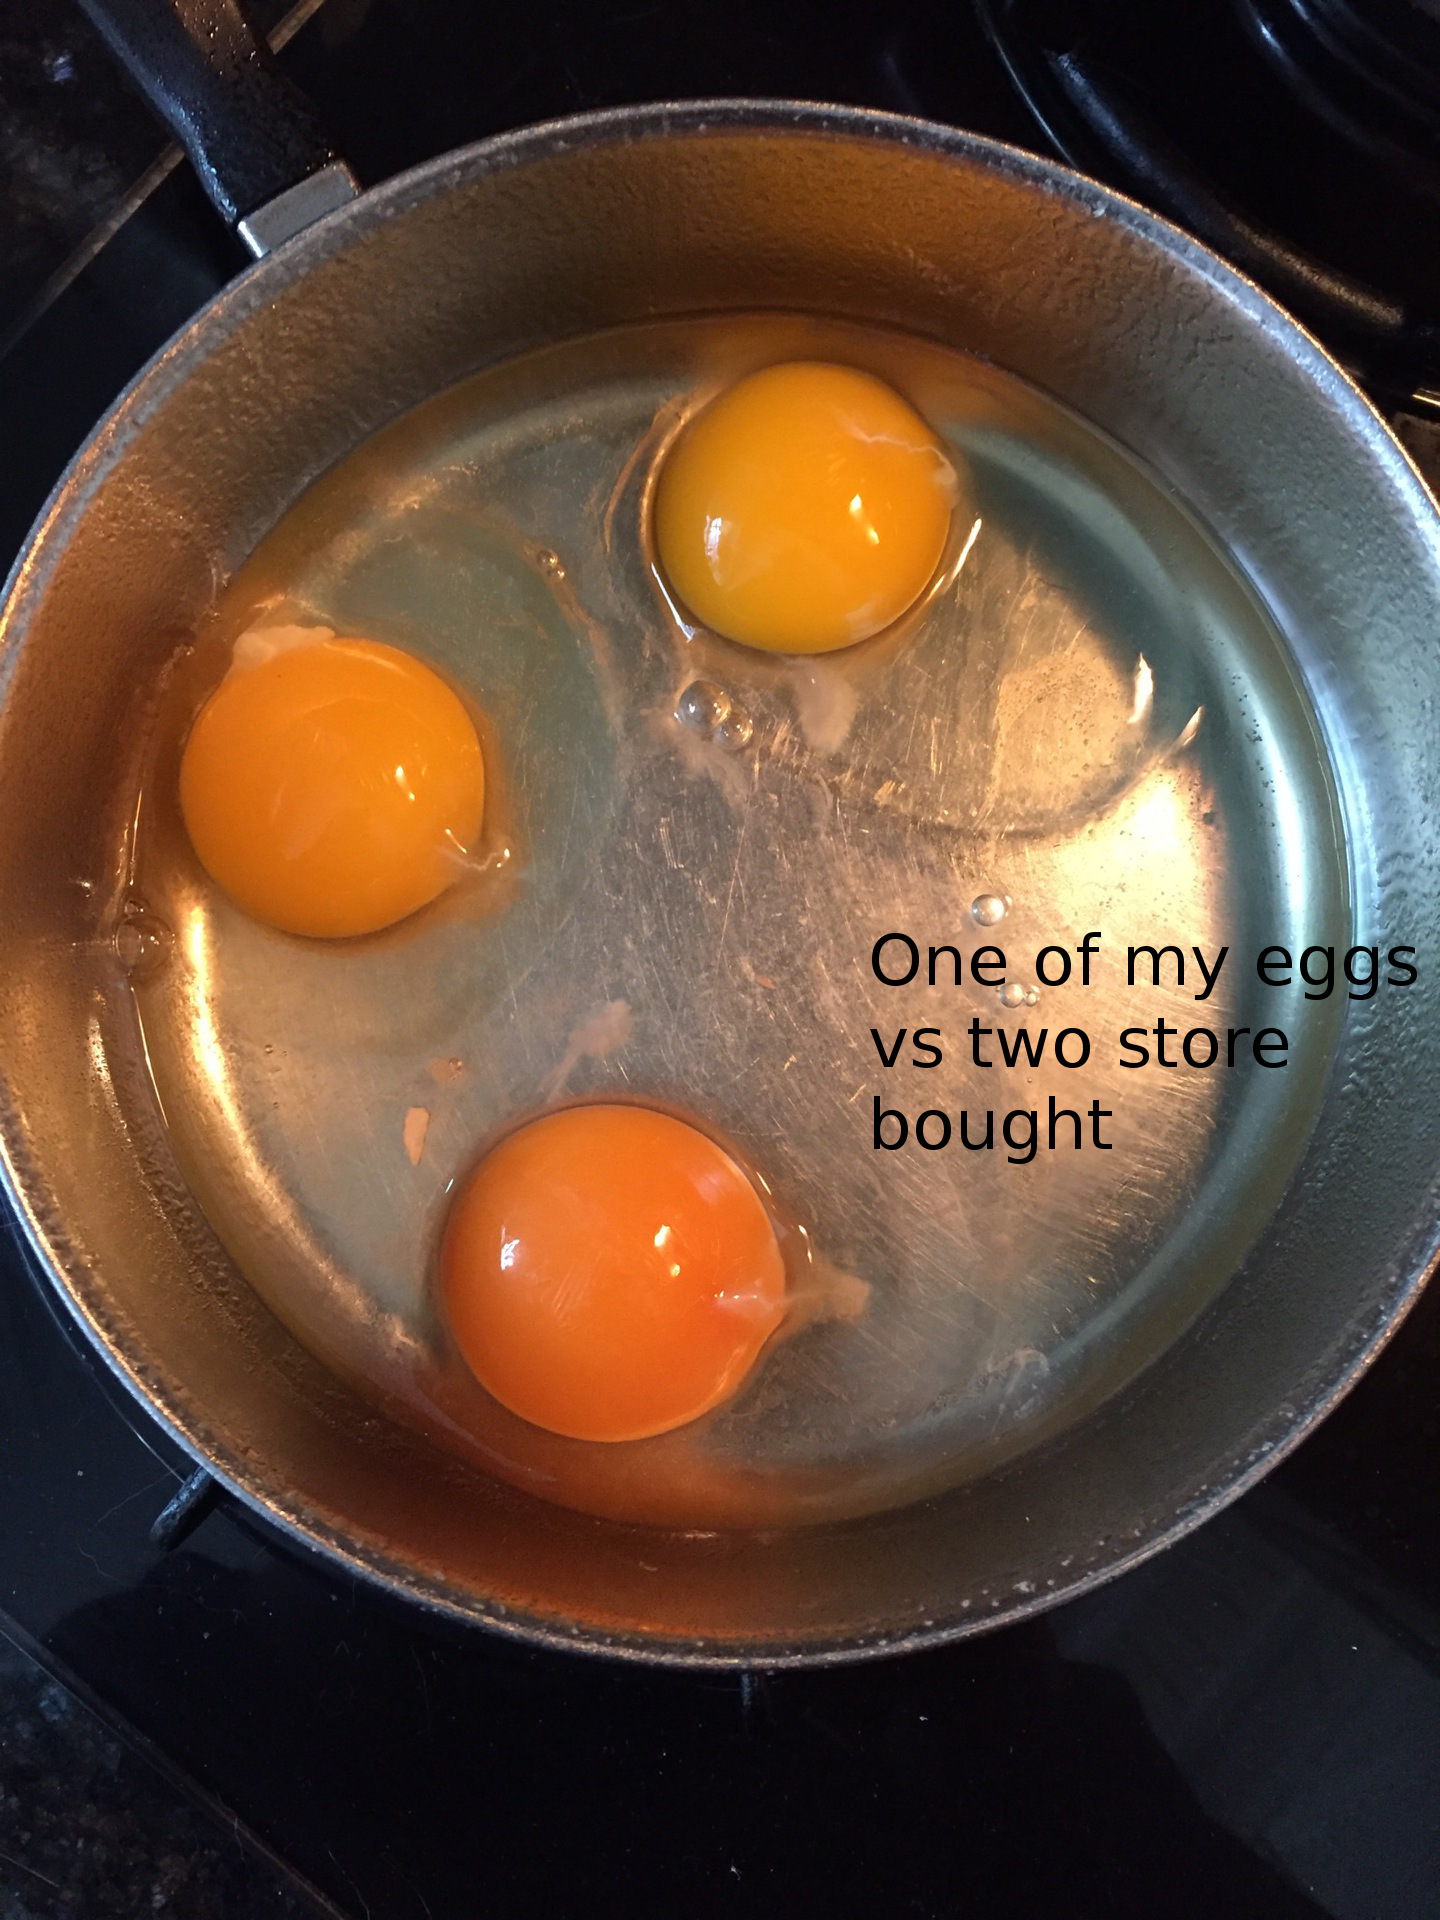 Store bought vs my egg